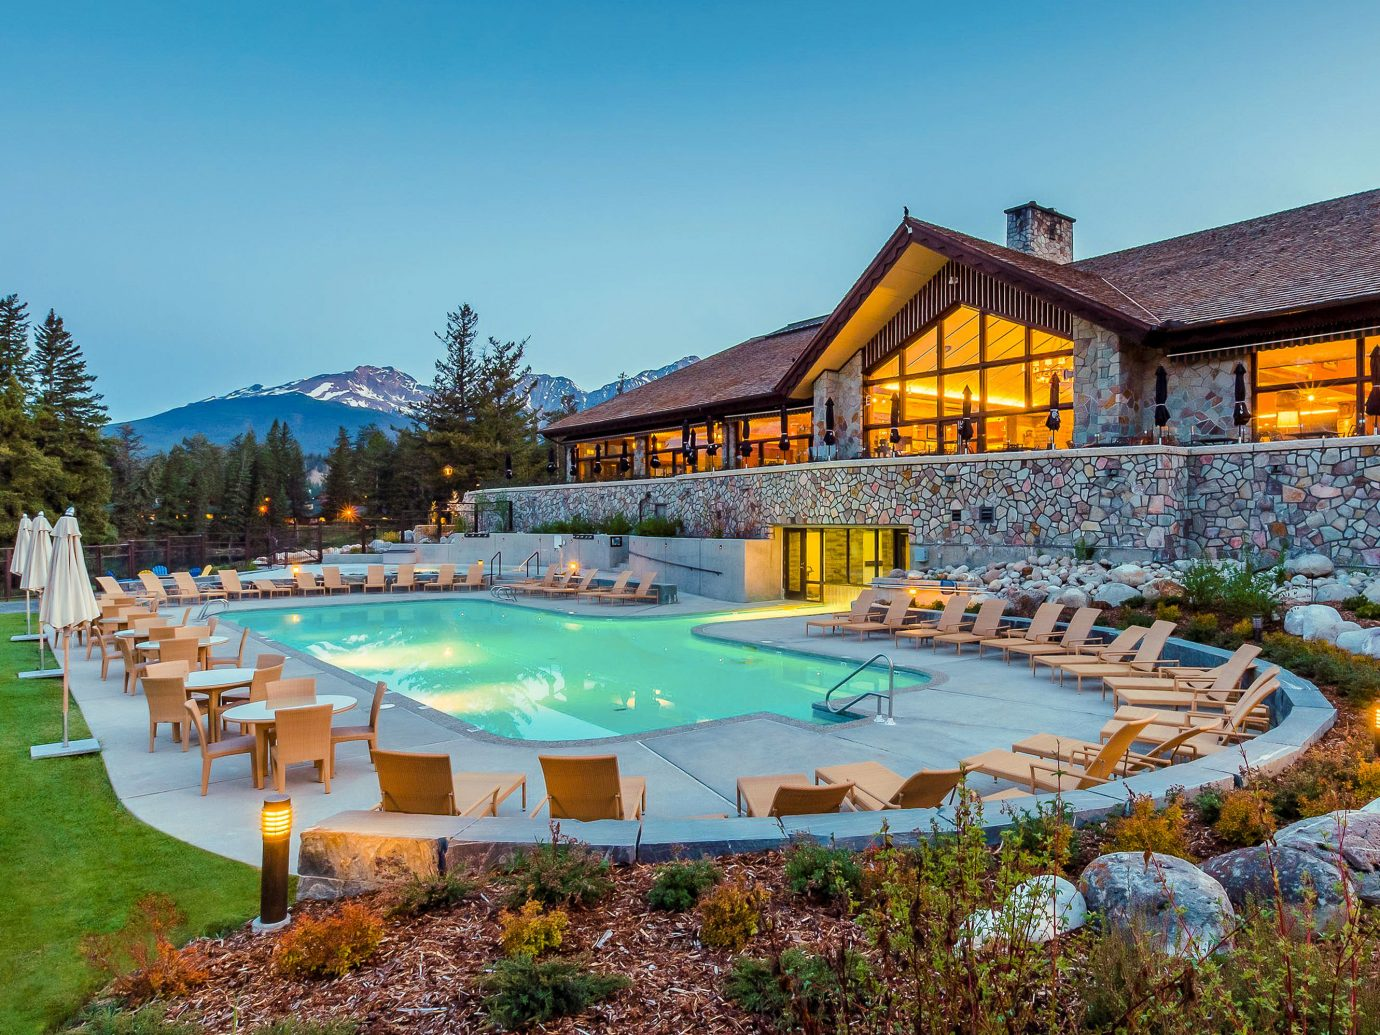 Alberta Boutique Hotels Canada Hotels Road Trips swimming pool property Resort leisure estate resort town water real estate home reflection Villa house sky landscape cottage vacation amenity